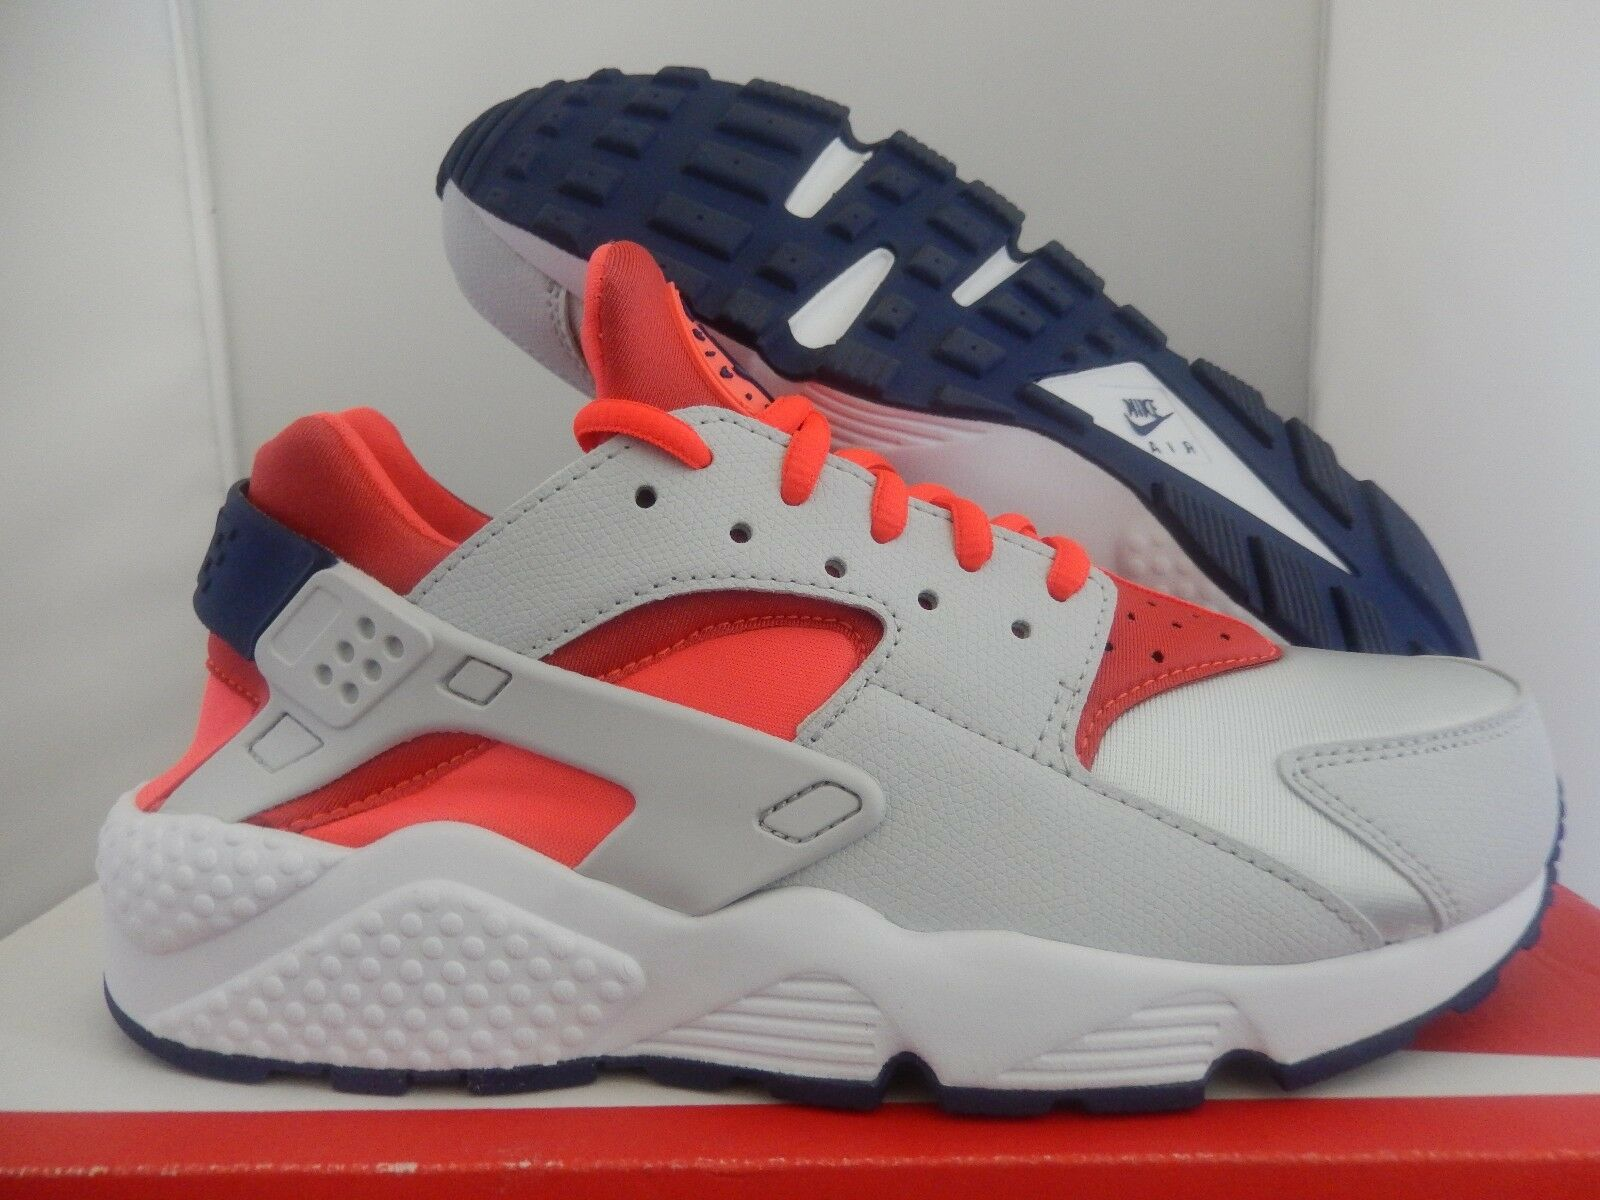 WMNS NIKE AIR HUARACHE RUN PURE PLATINUM-BRIGHT CRIMSON SZ 7 [634835-013]